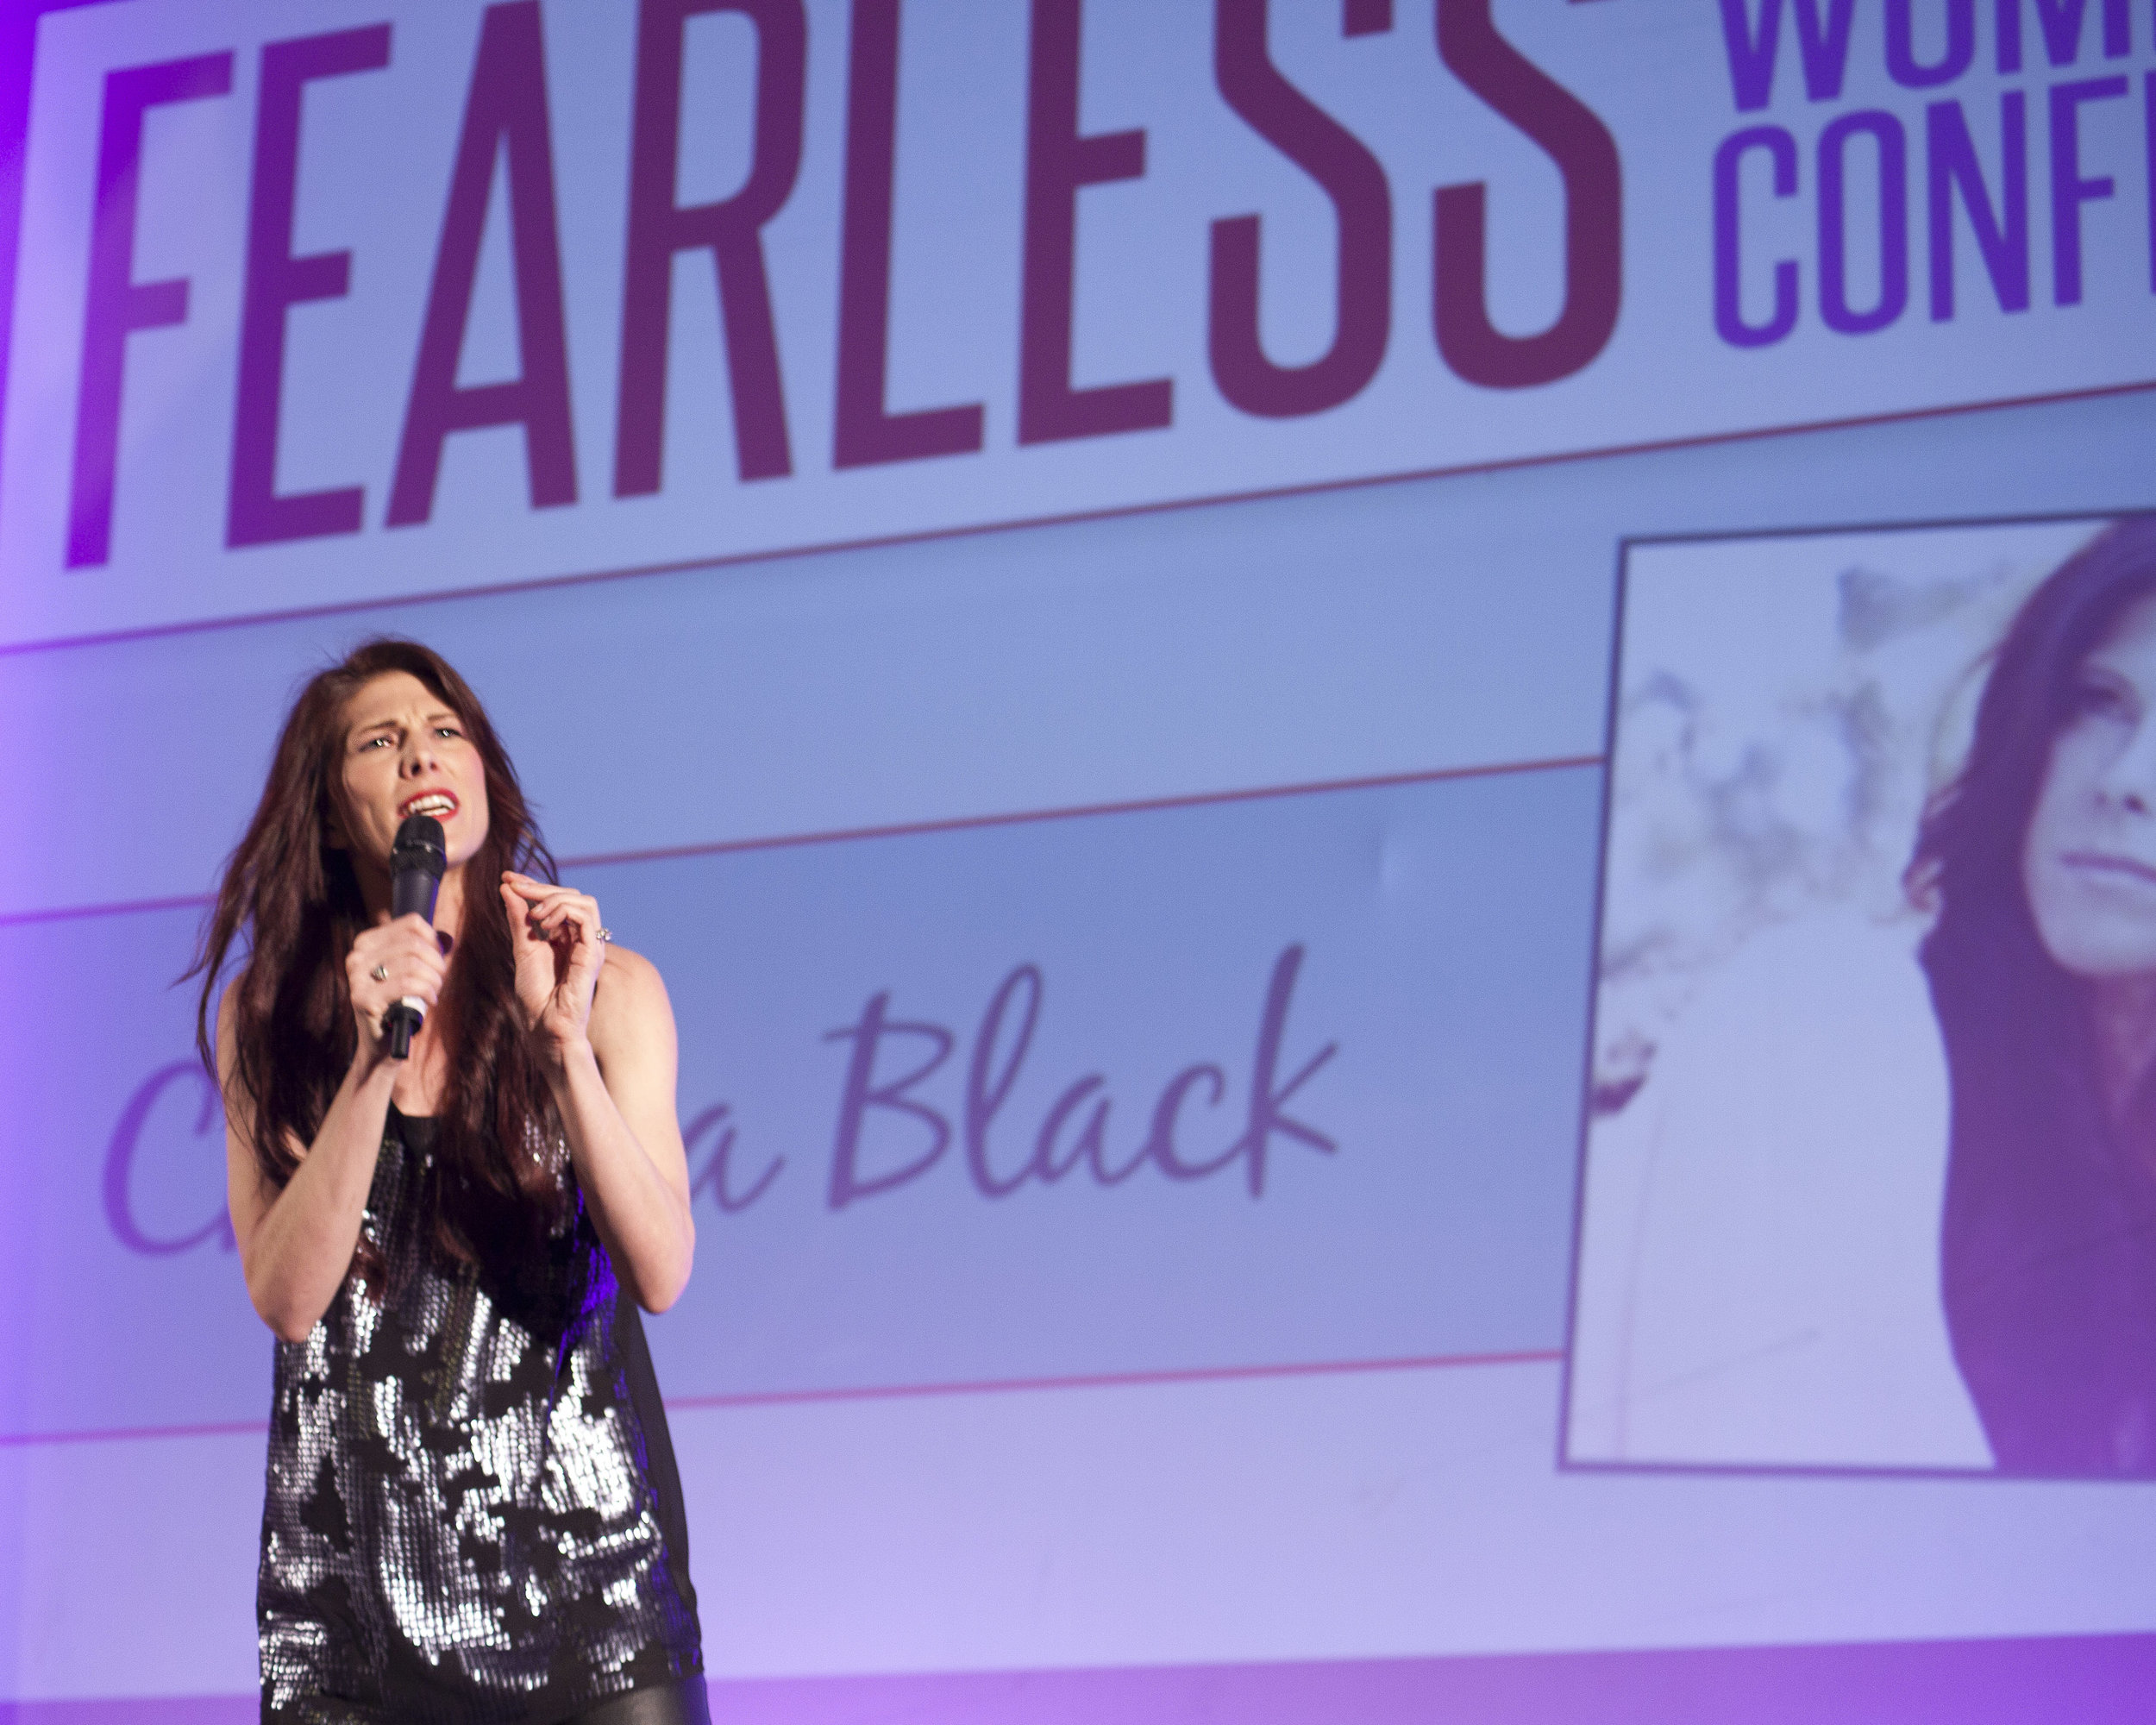 Christa black, fearless women's conference